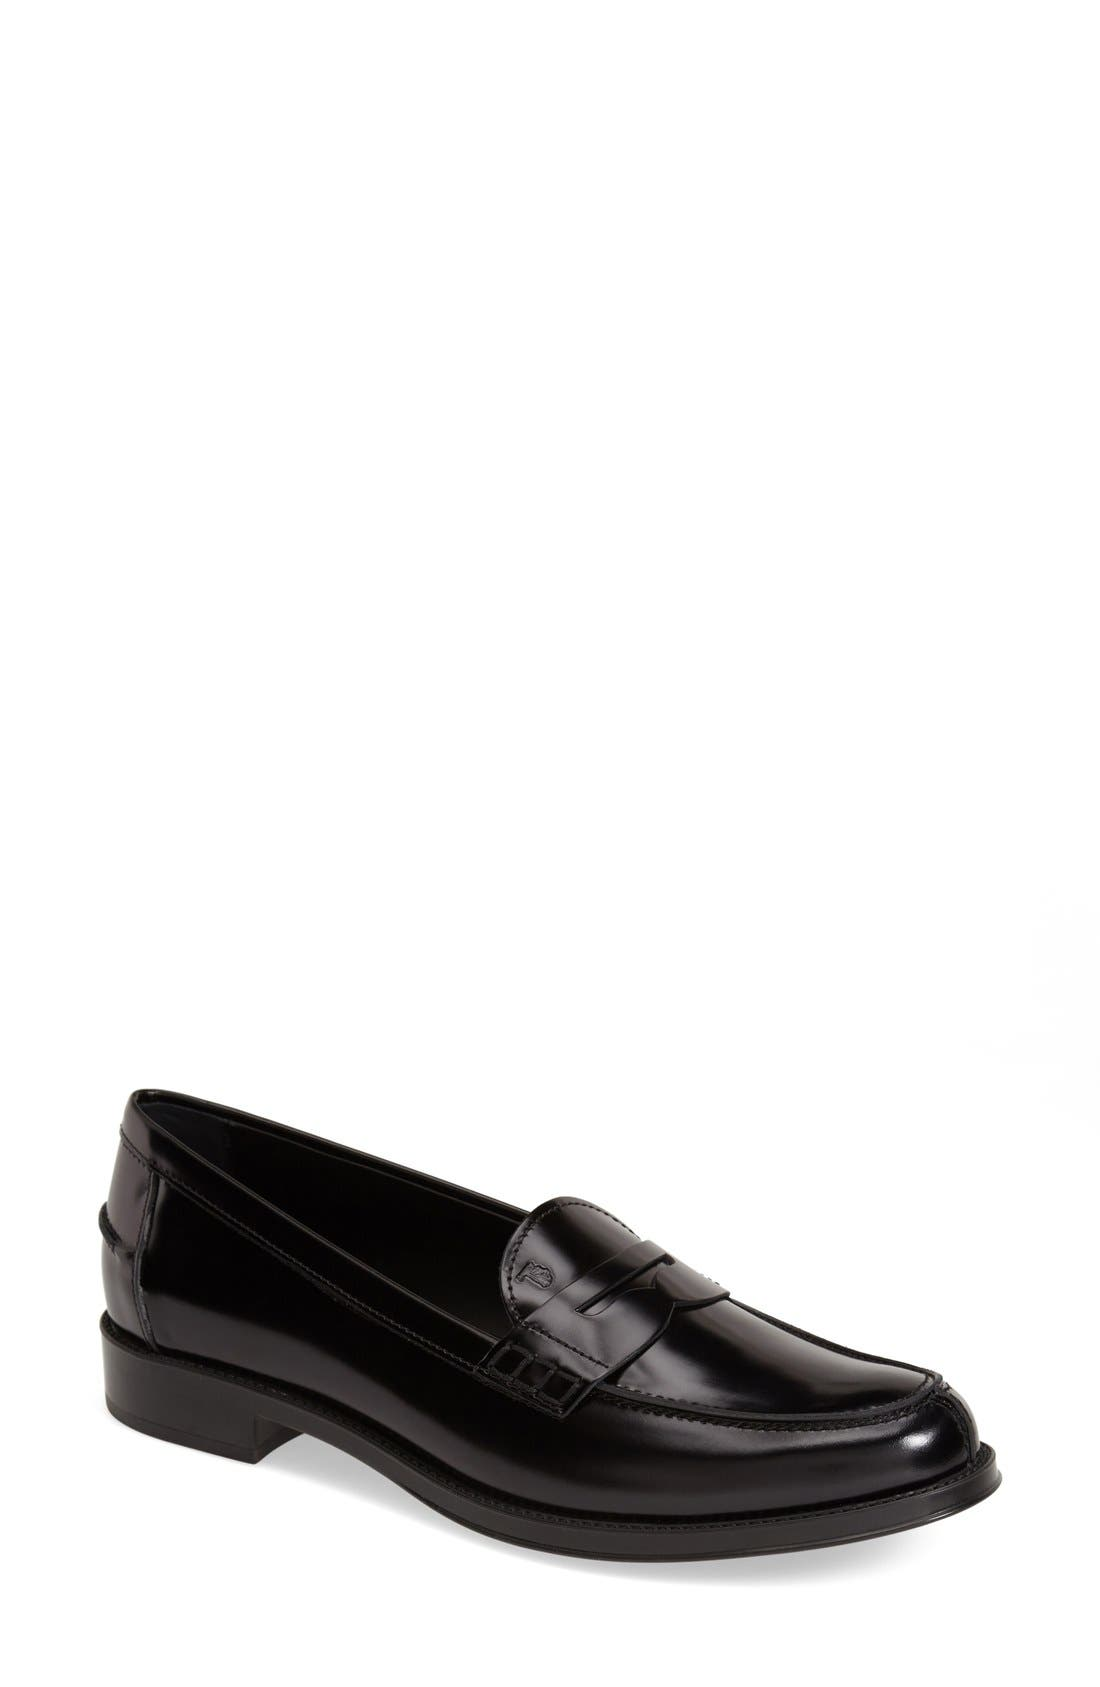 Penny Loafer,                         Main,                         color, BLACK LEATHER